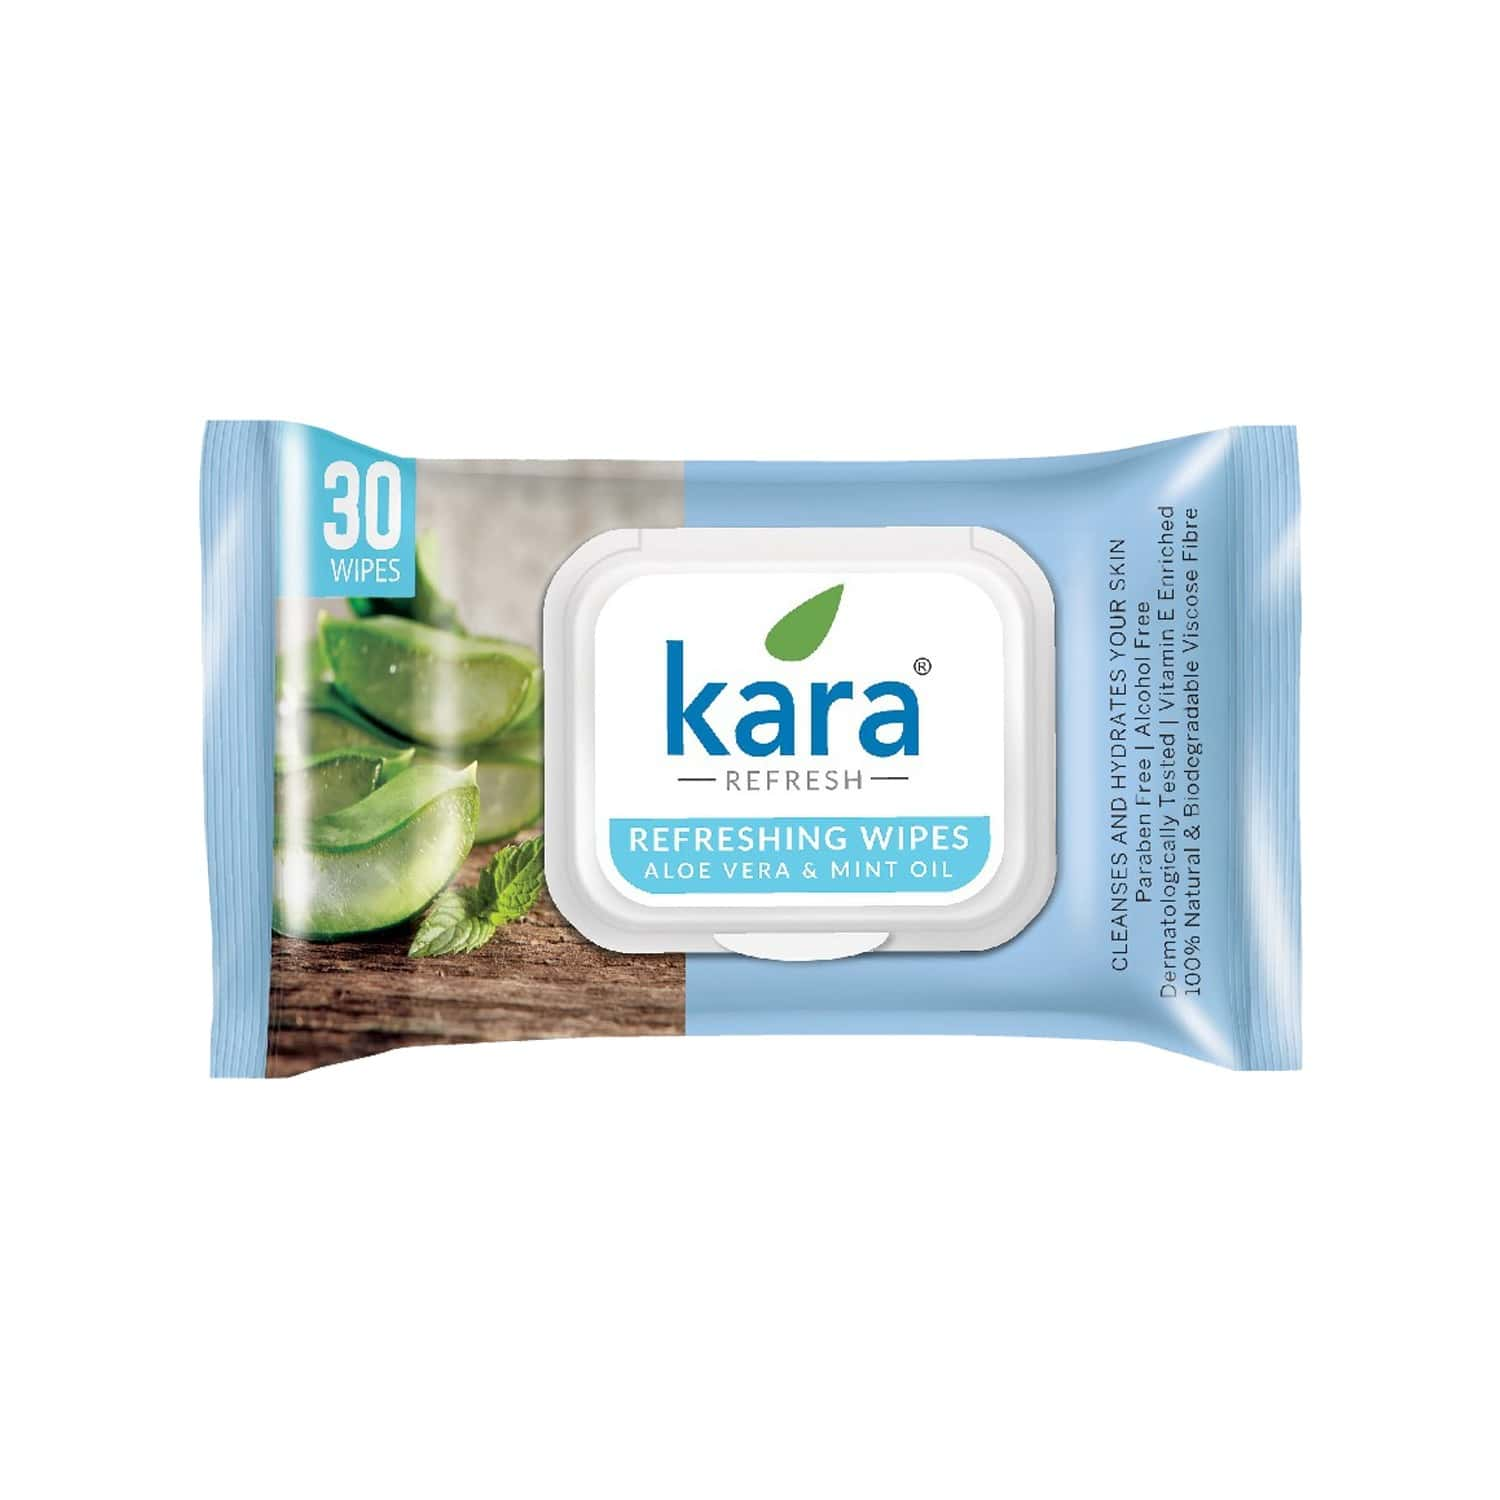 Kara Cleansing And Refreshing Aloe Vera And Mint Oil Face Wipes  Packet Of 30